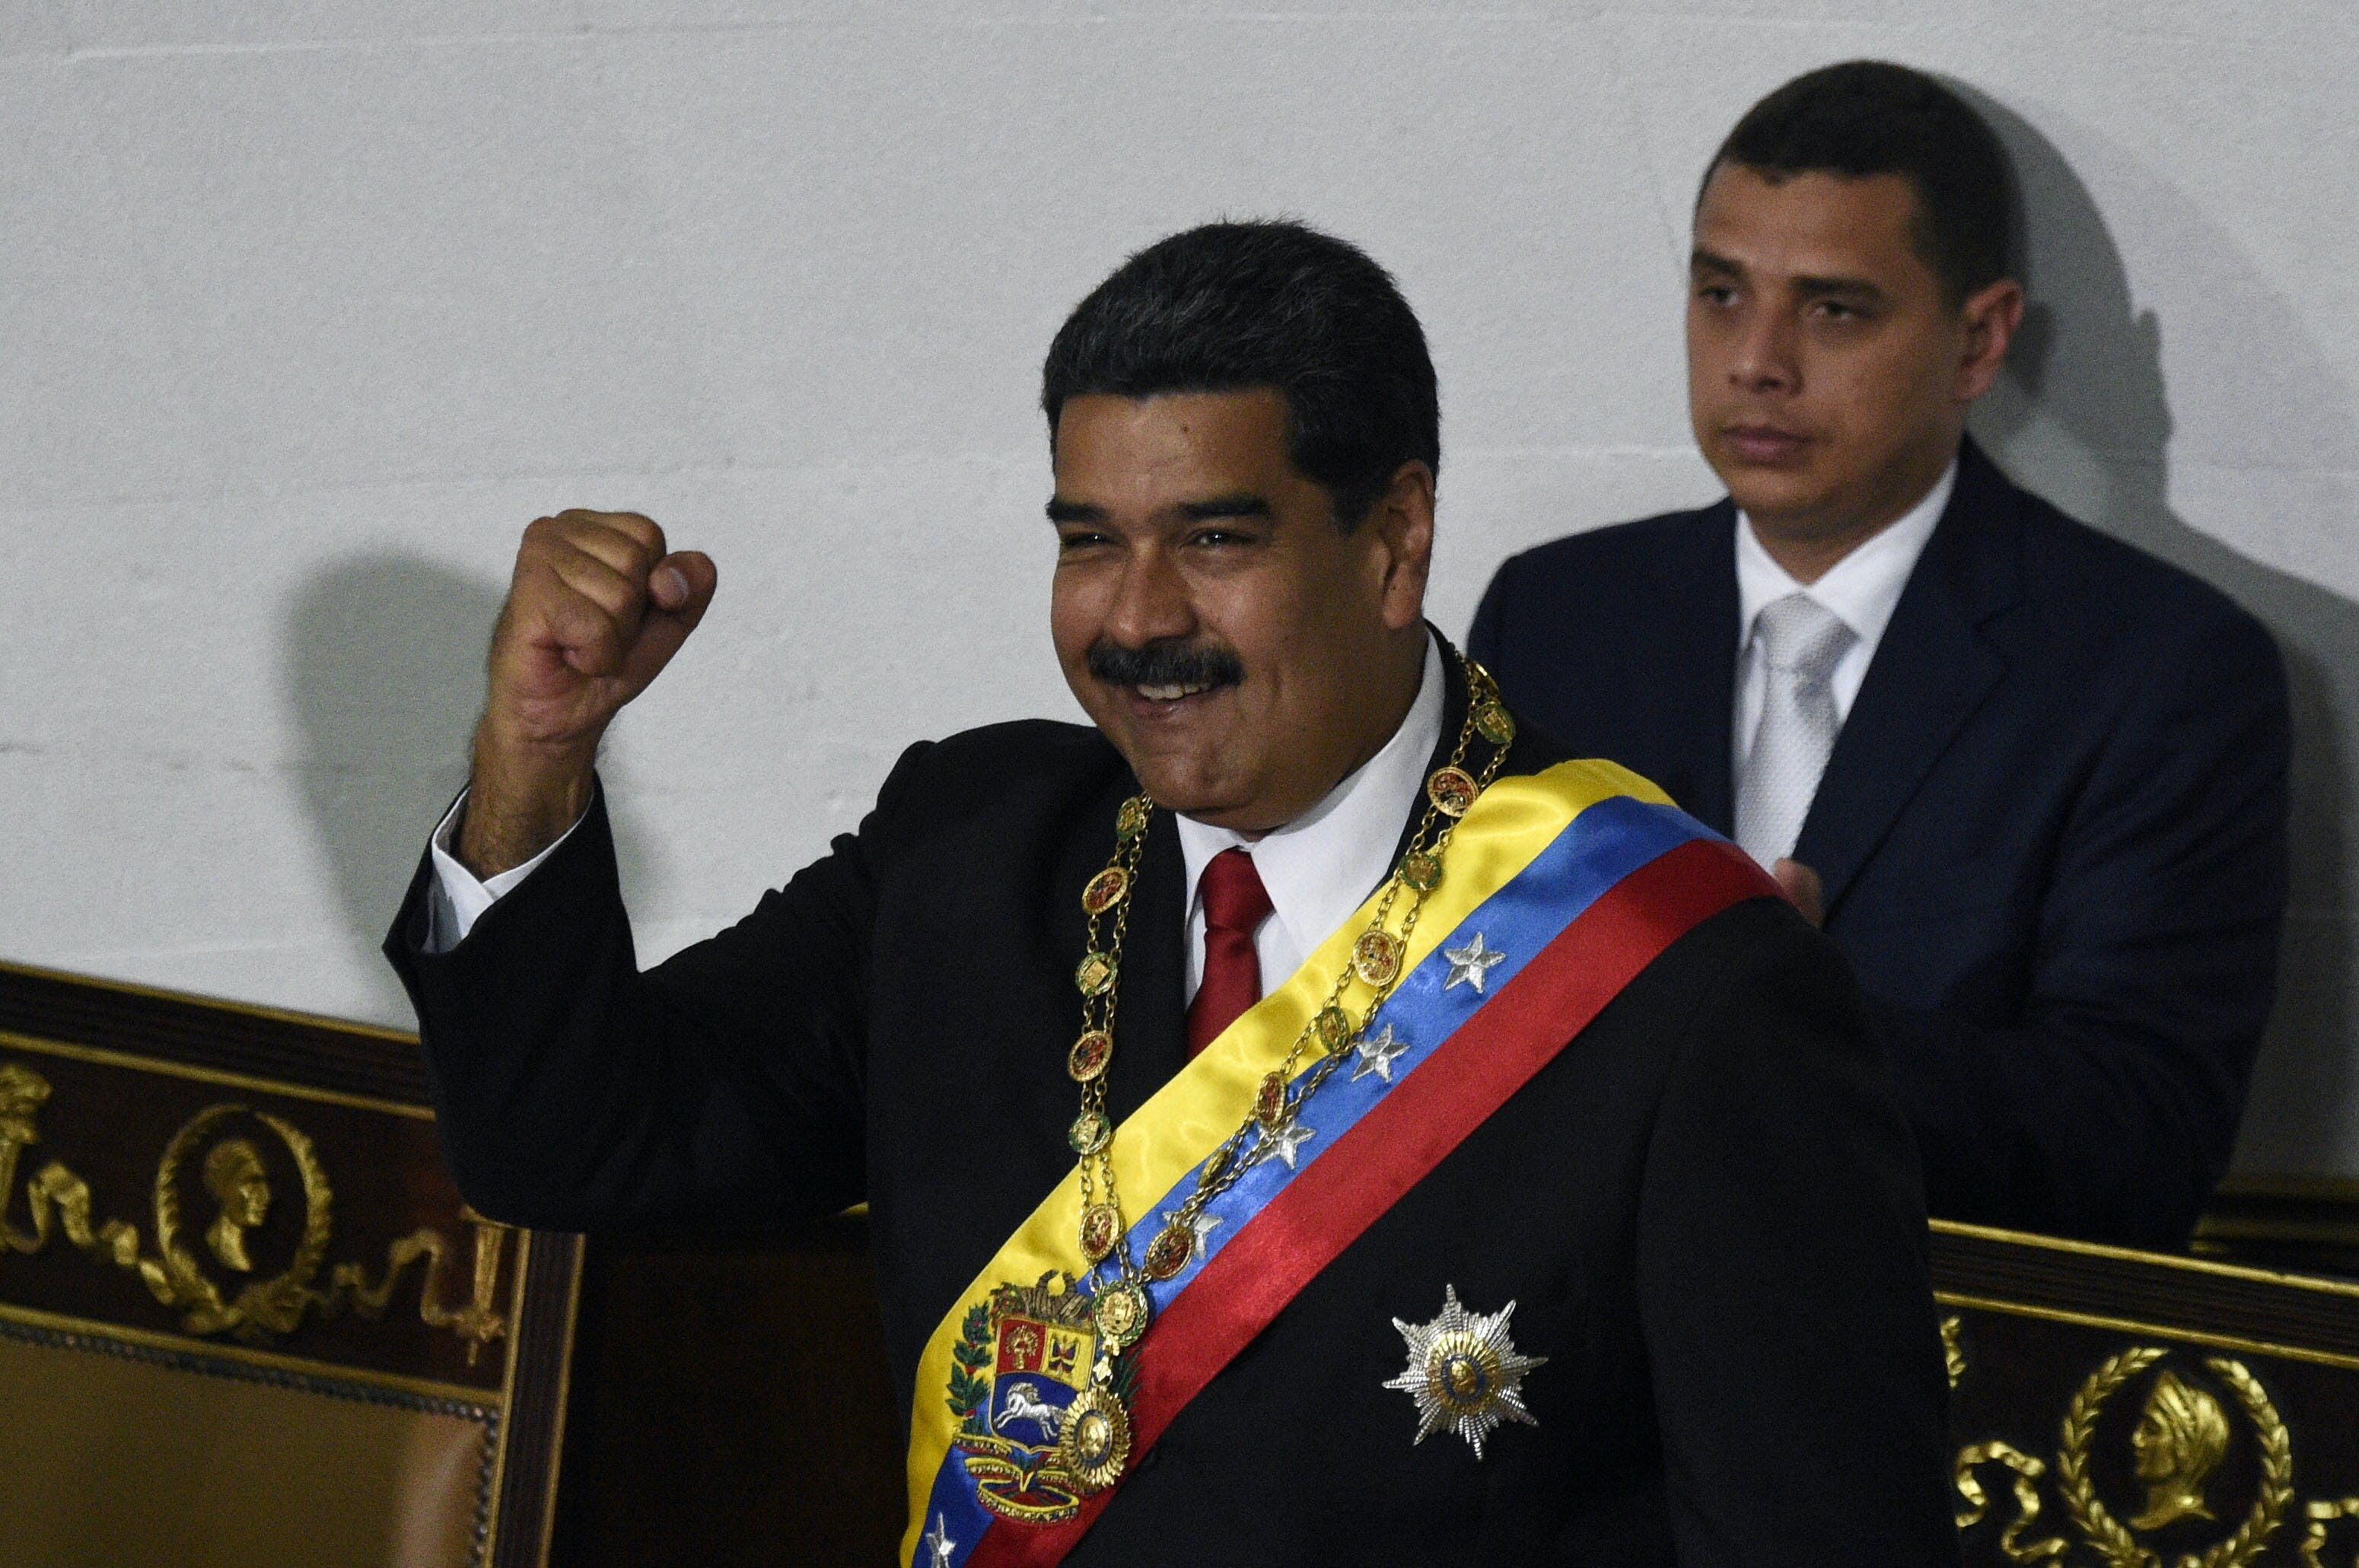 Venezuelan President Nicolas Maduro gestures during his second-term sworn in ceremony, at the Congress in Caracas on May 24, 2018. (Photo by Federico Parra / AFP)        (Photo credit should read FEDERICO PARRA/AFP/Getty Images)